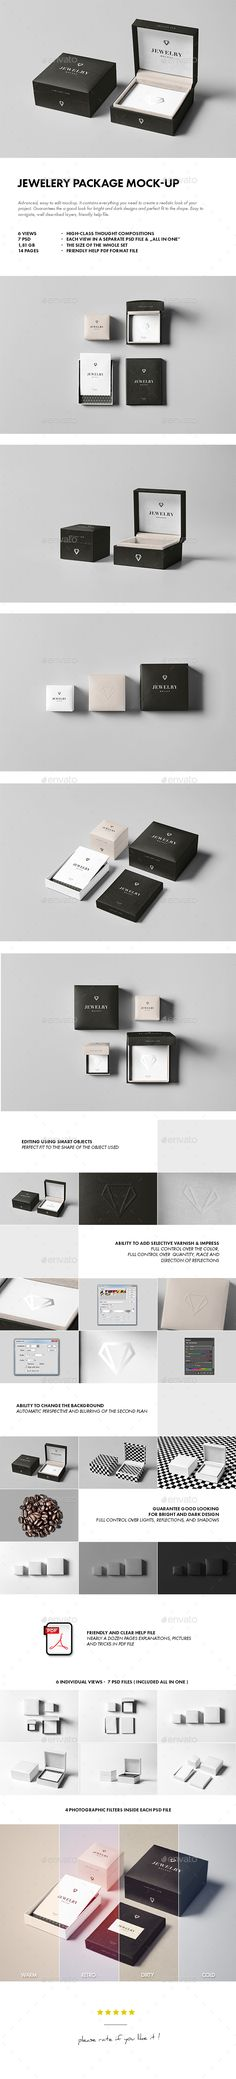 Jewelery Package Mock-up #design Download: http://graphicriver.net/item/jewelery-package-mockup/14517078?ref=ksioks